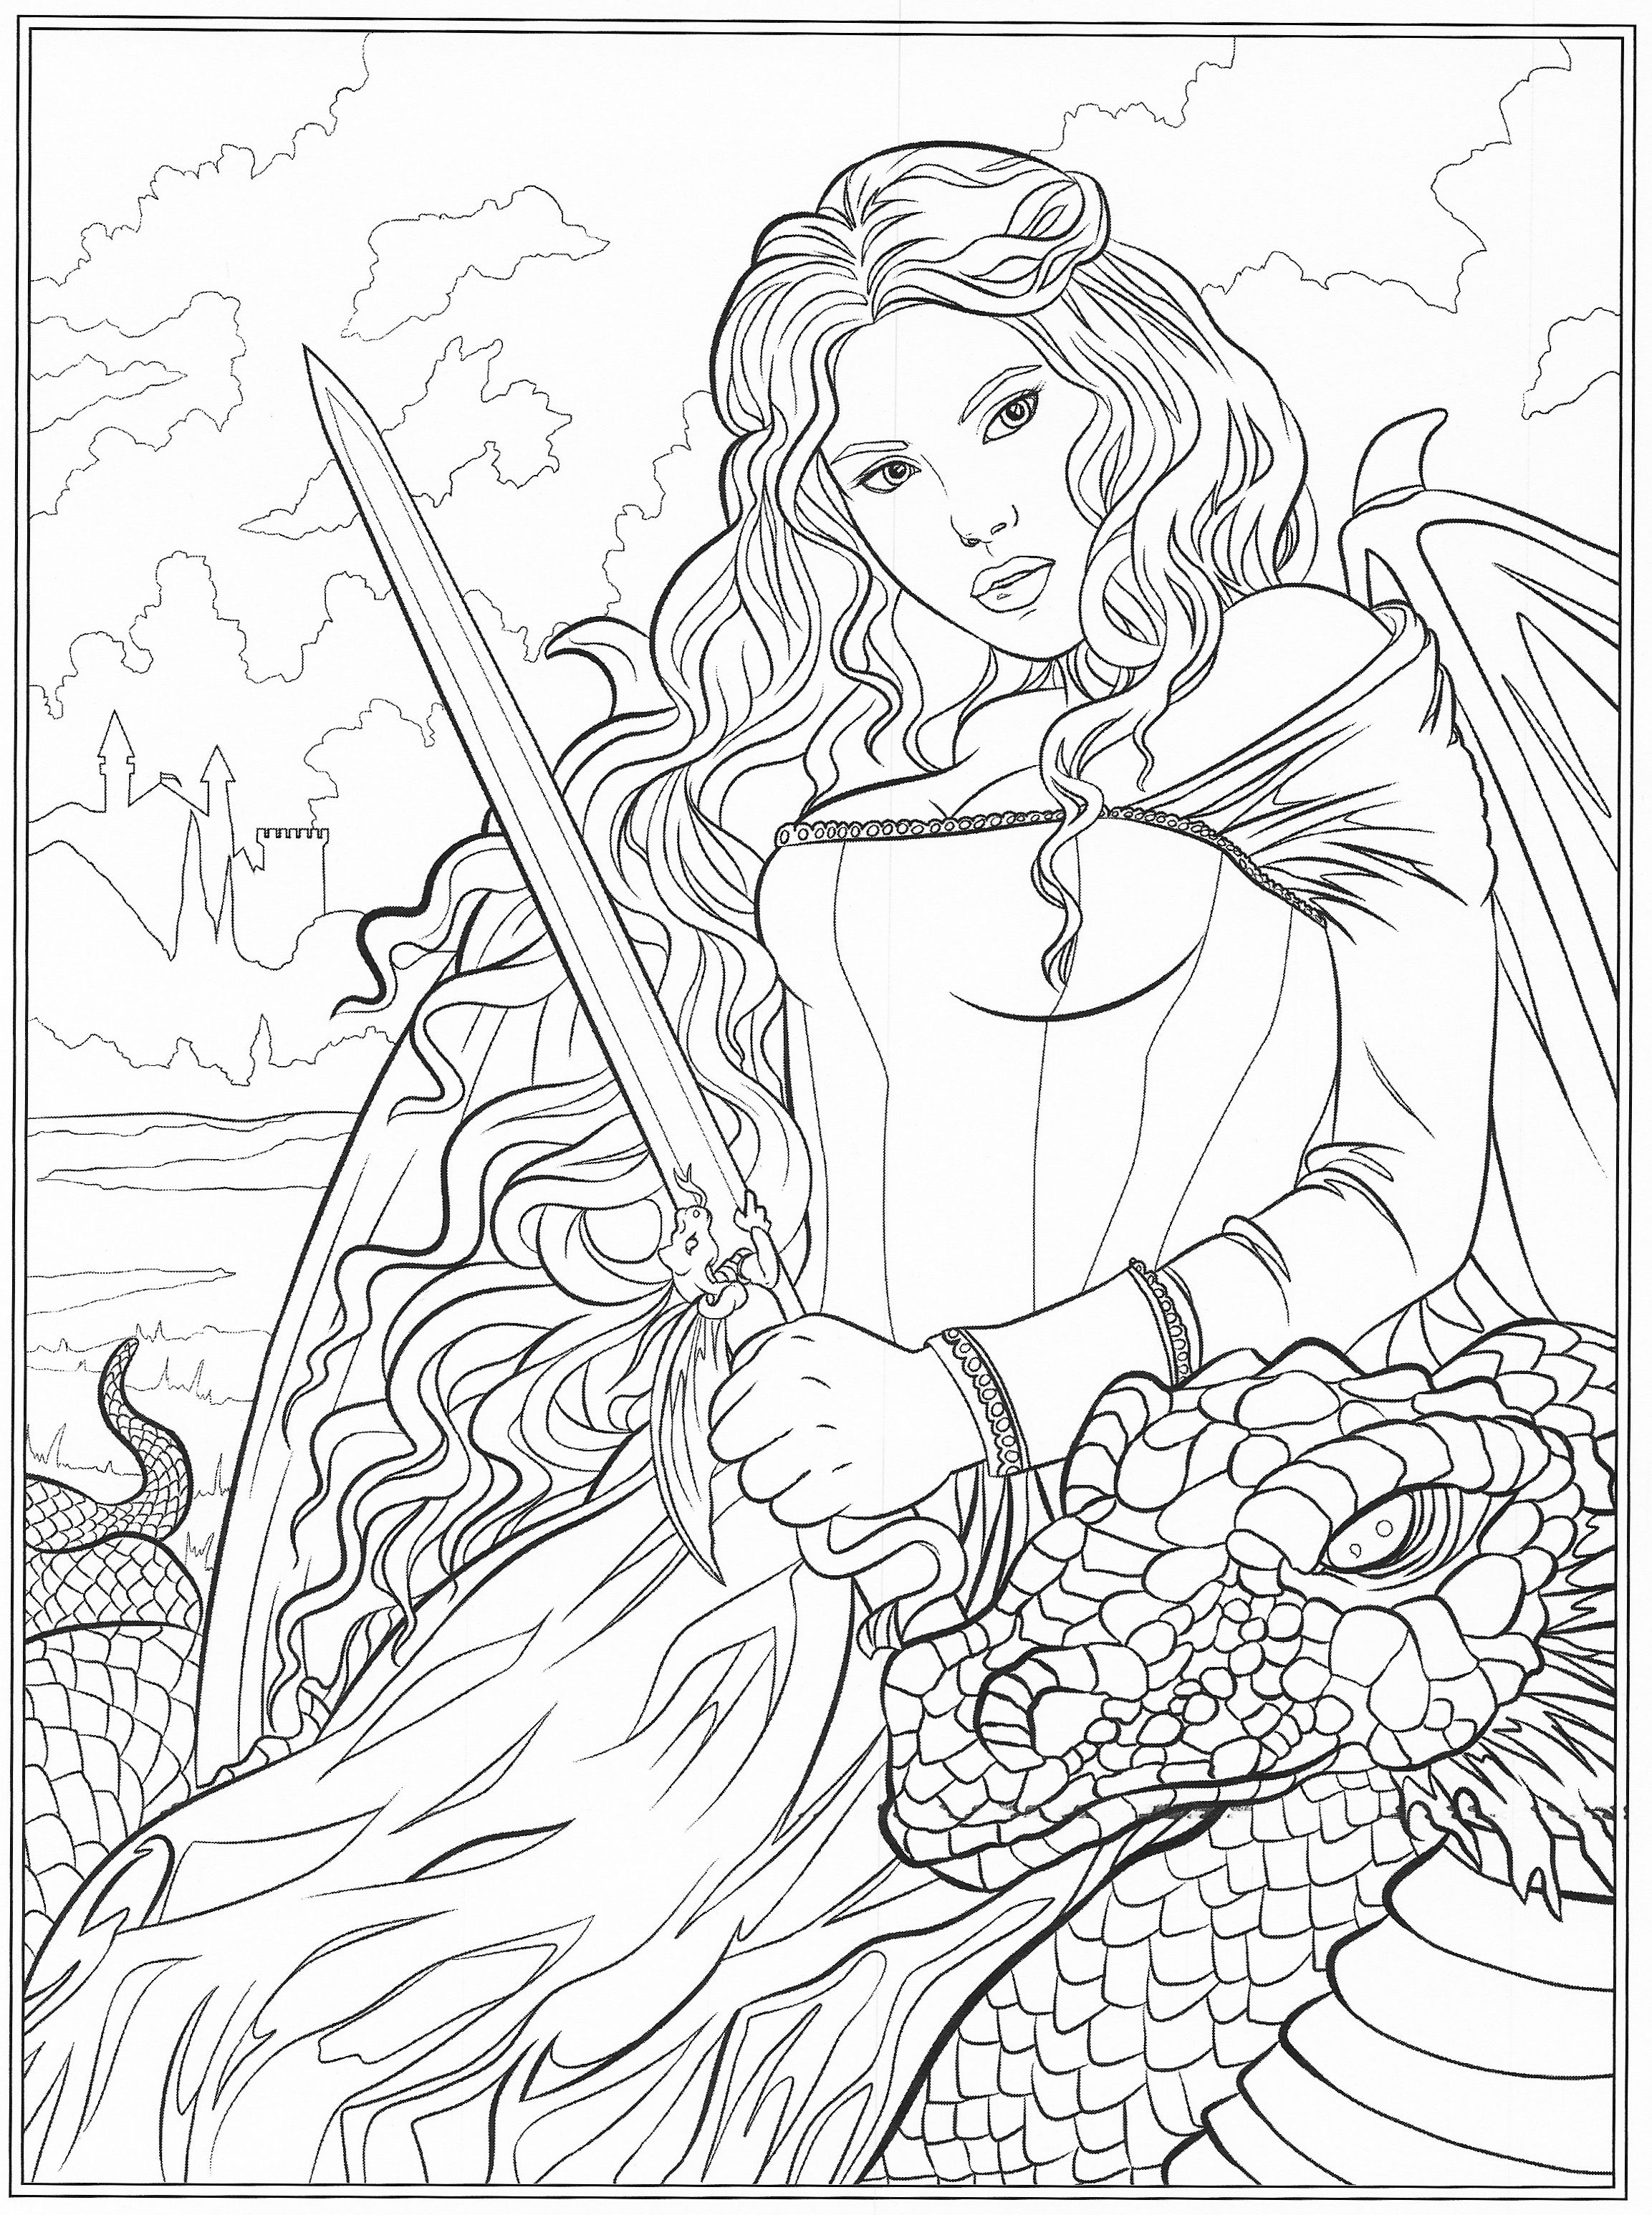 Fairy art coloring book by selina fenech - Gothic Dark Fantasy Coloring Book Fantasy Art Coloring By Selina Volume 6